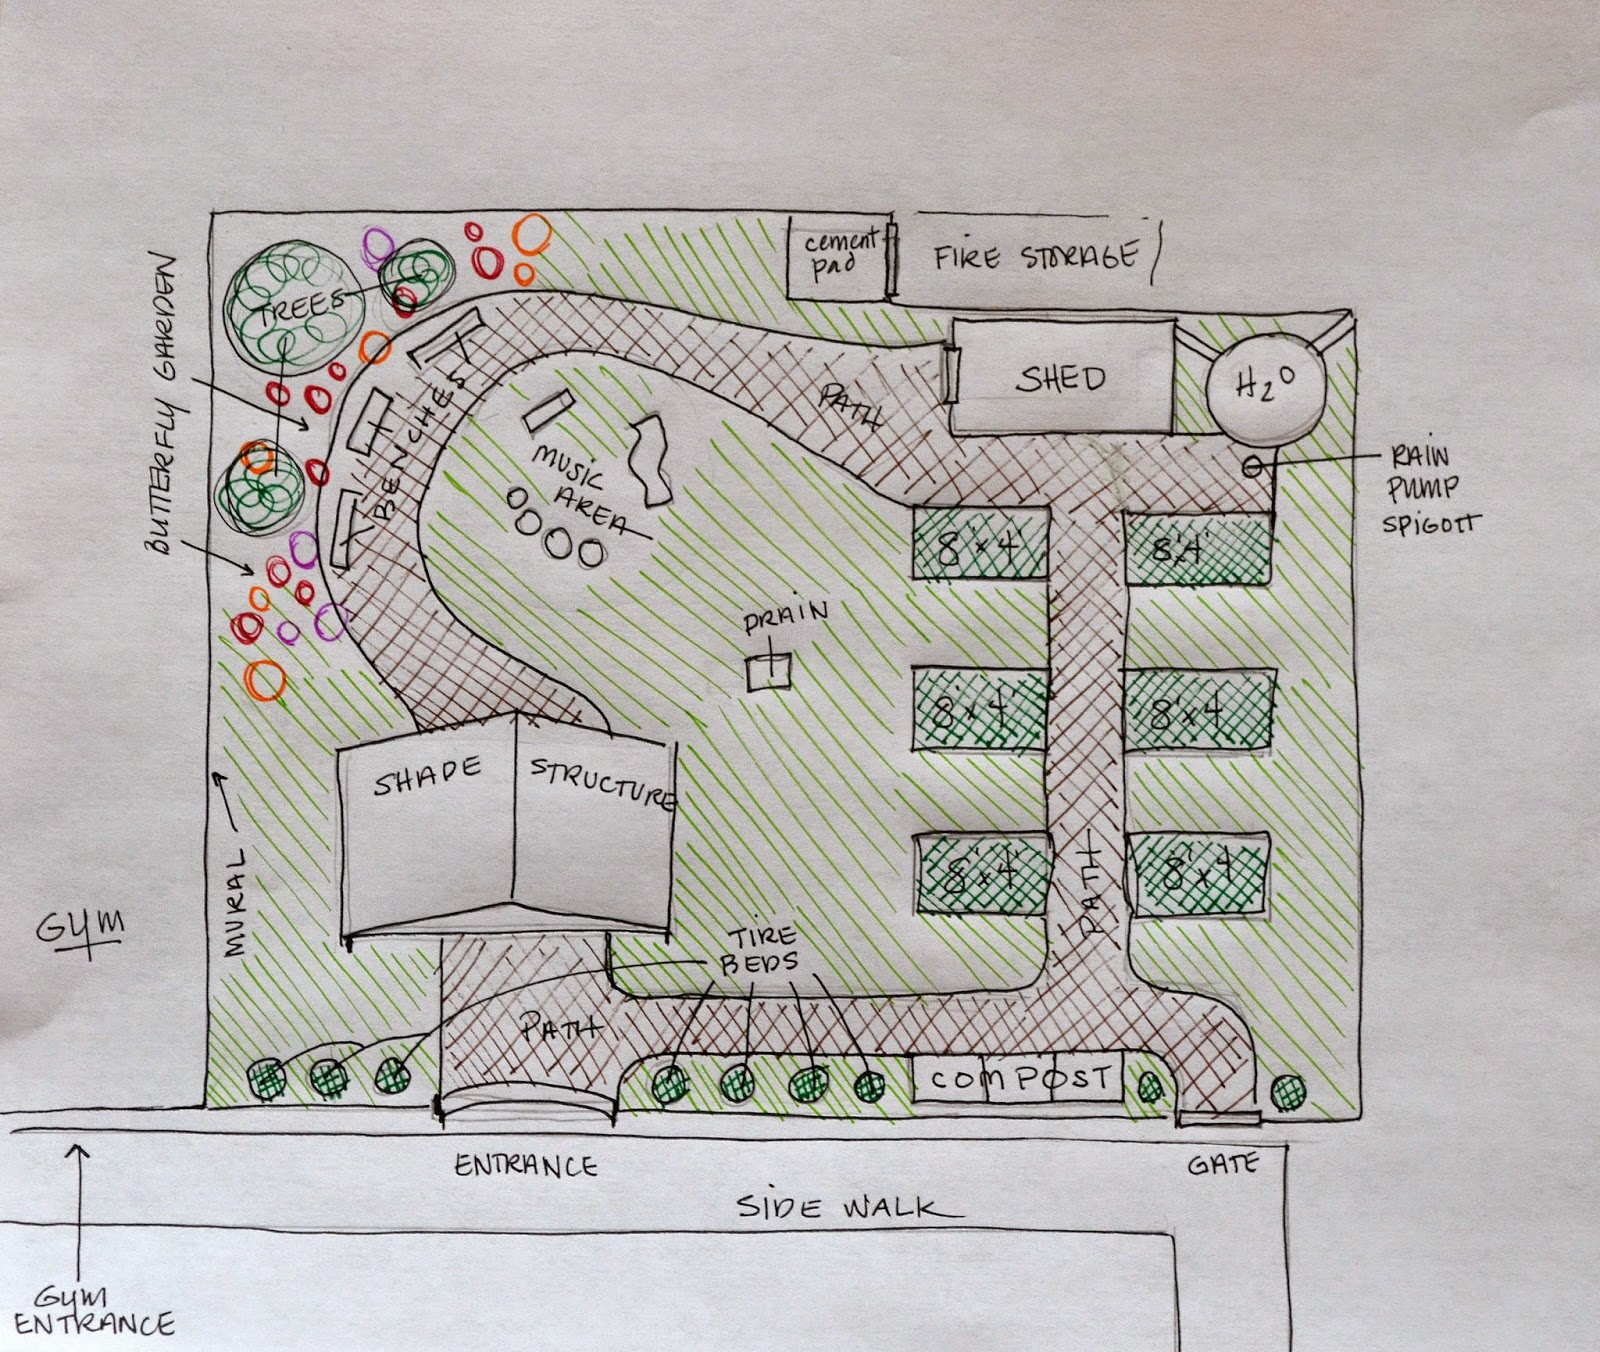 La maison boheme creating community a school garden for School garden designs